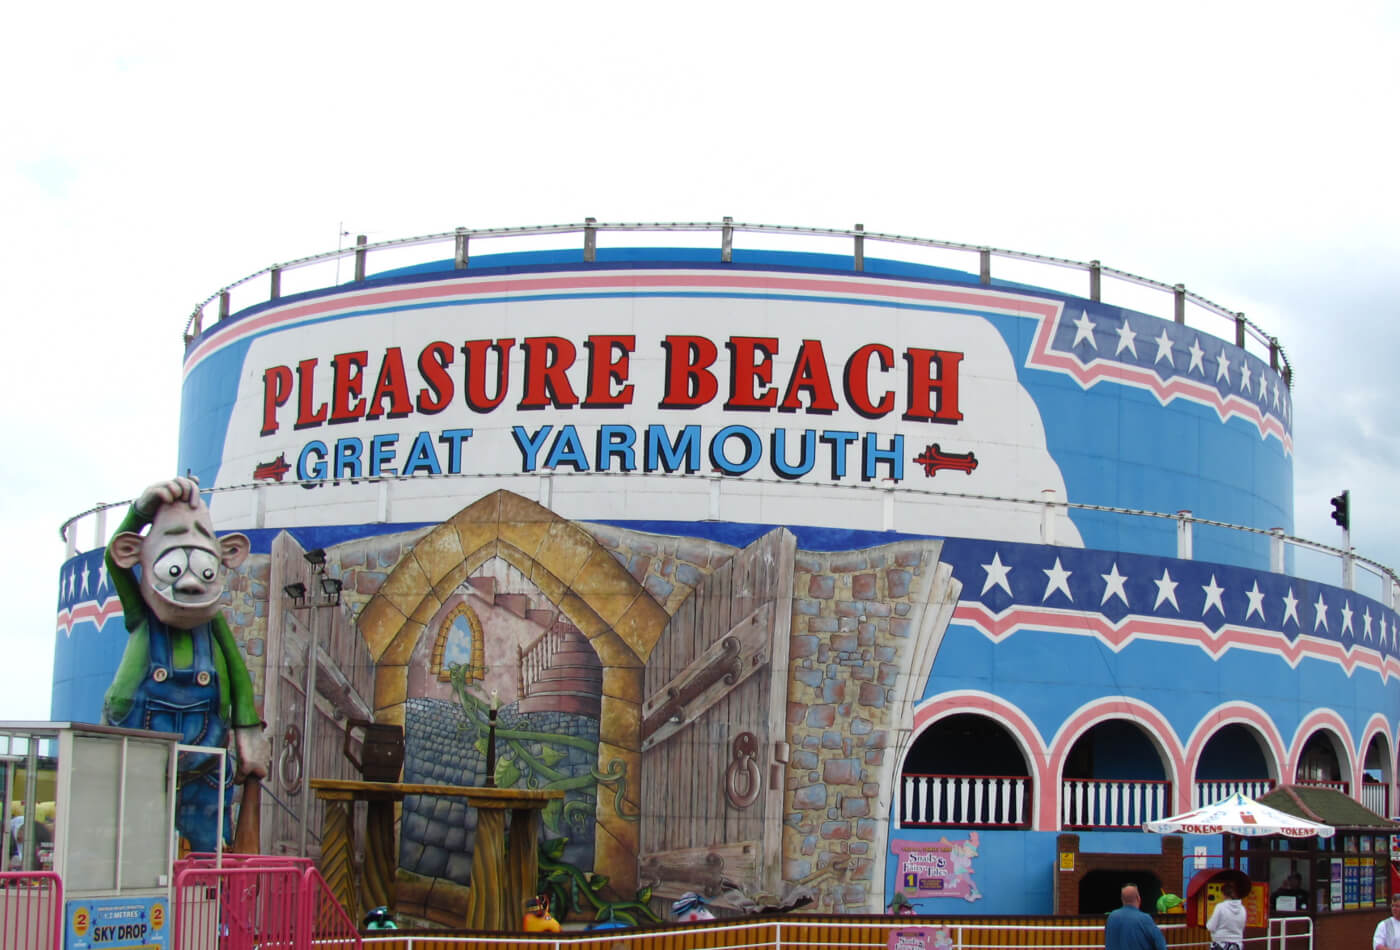 Family days out in Great Yarmouth